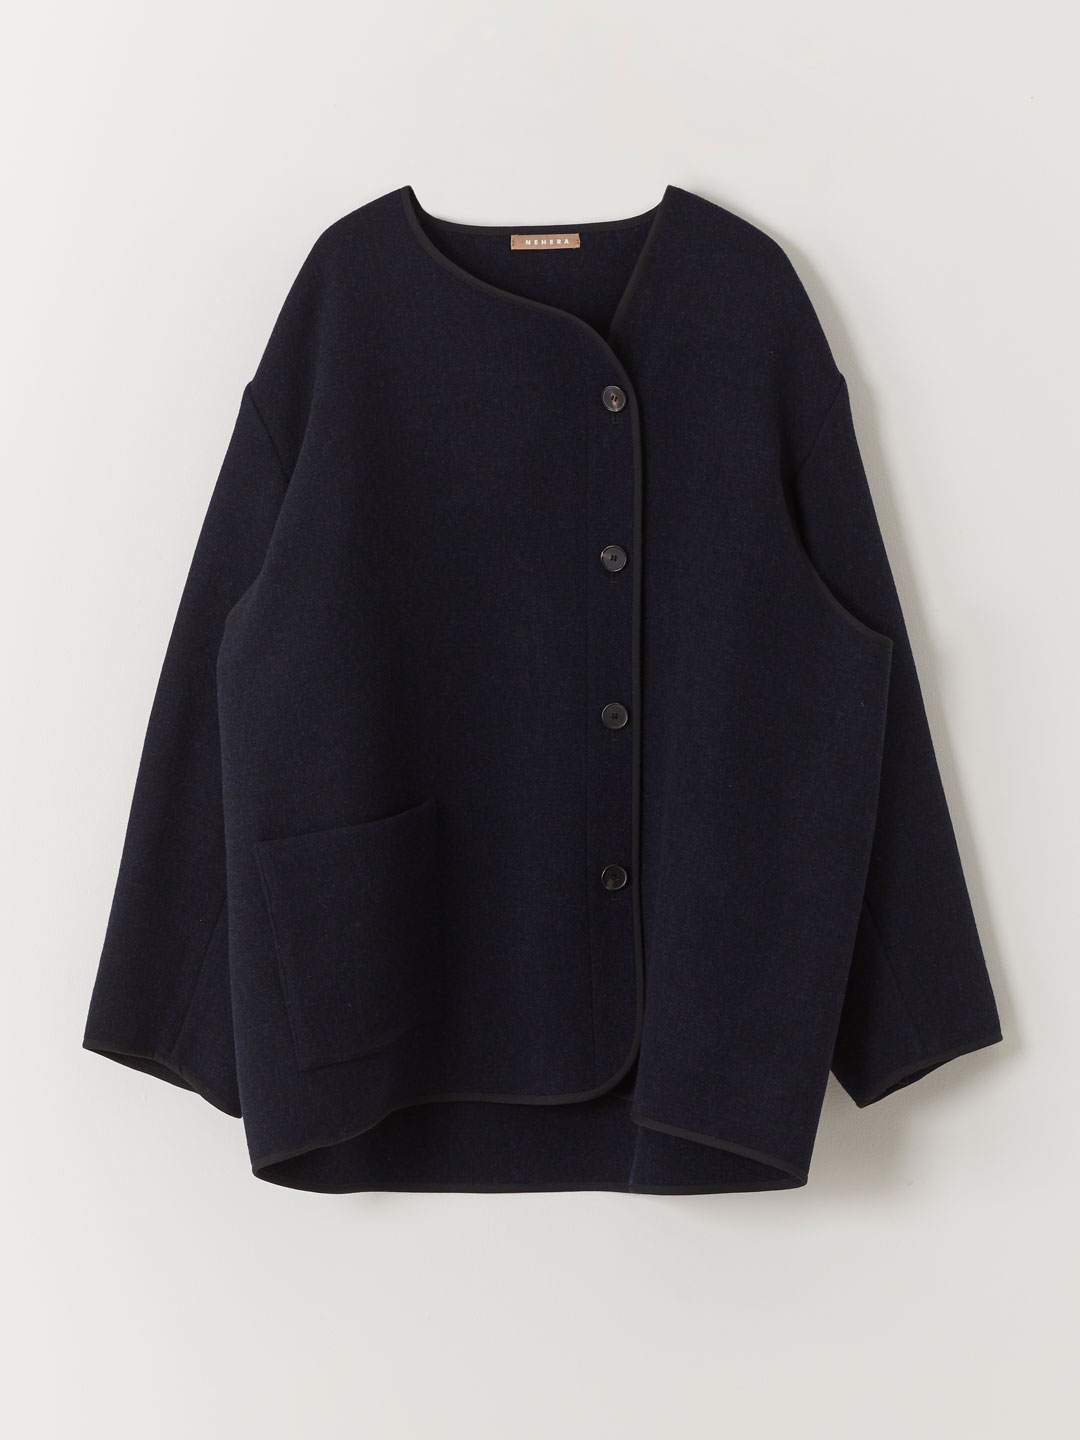 Triple Wool Fleece Jacket - Black